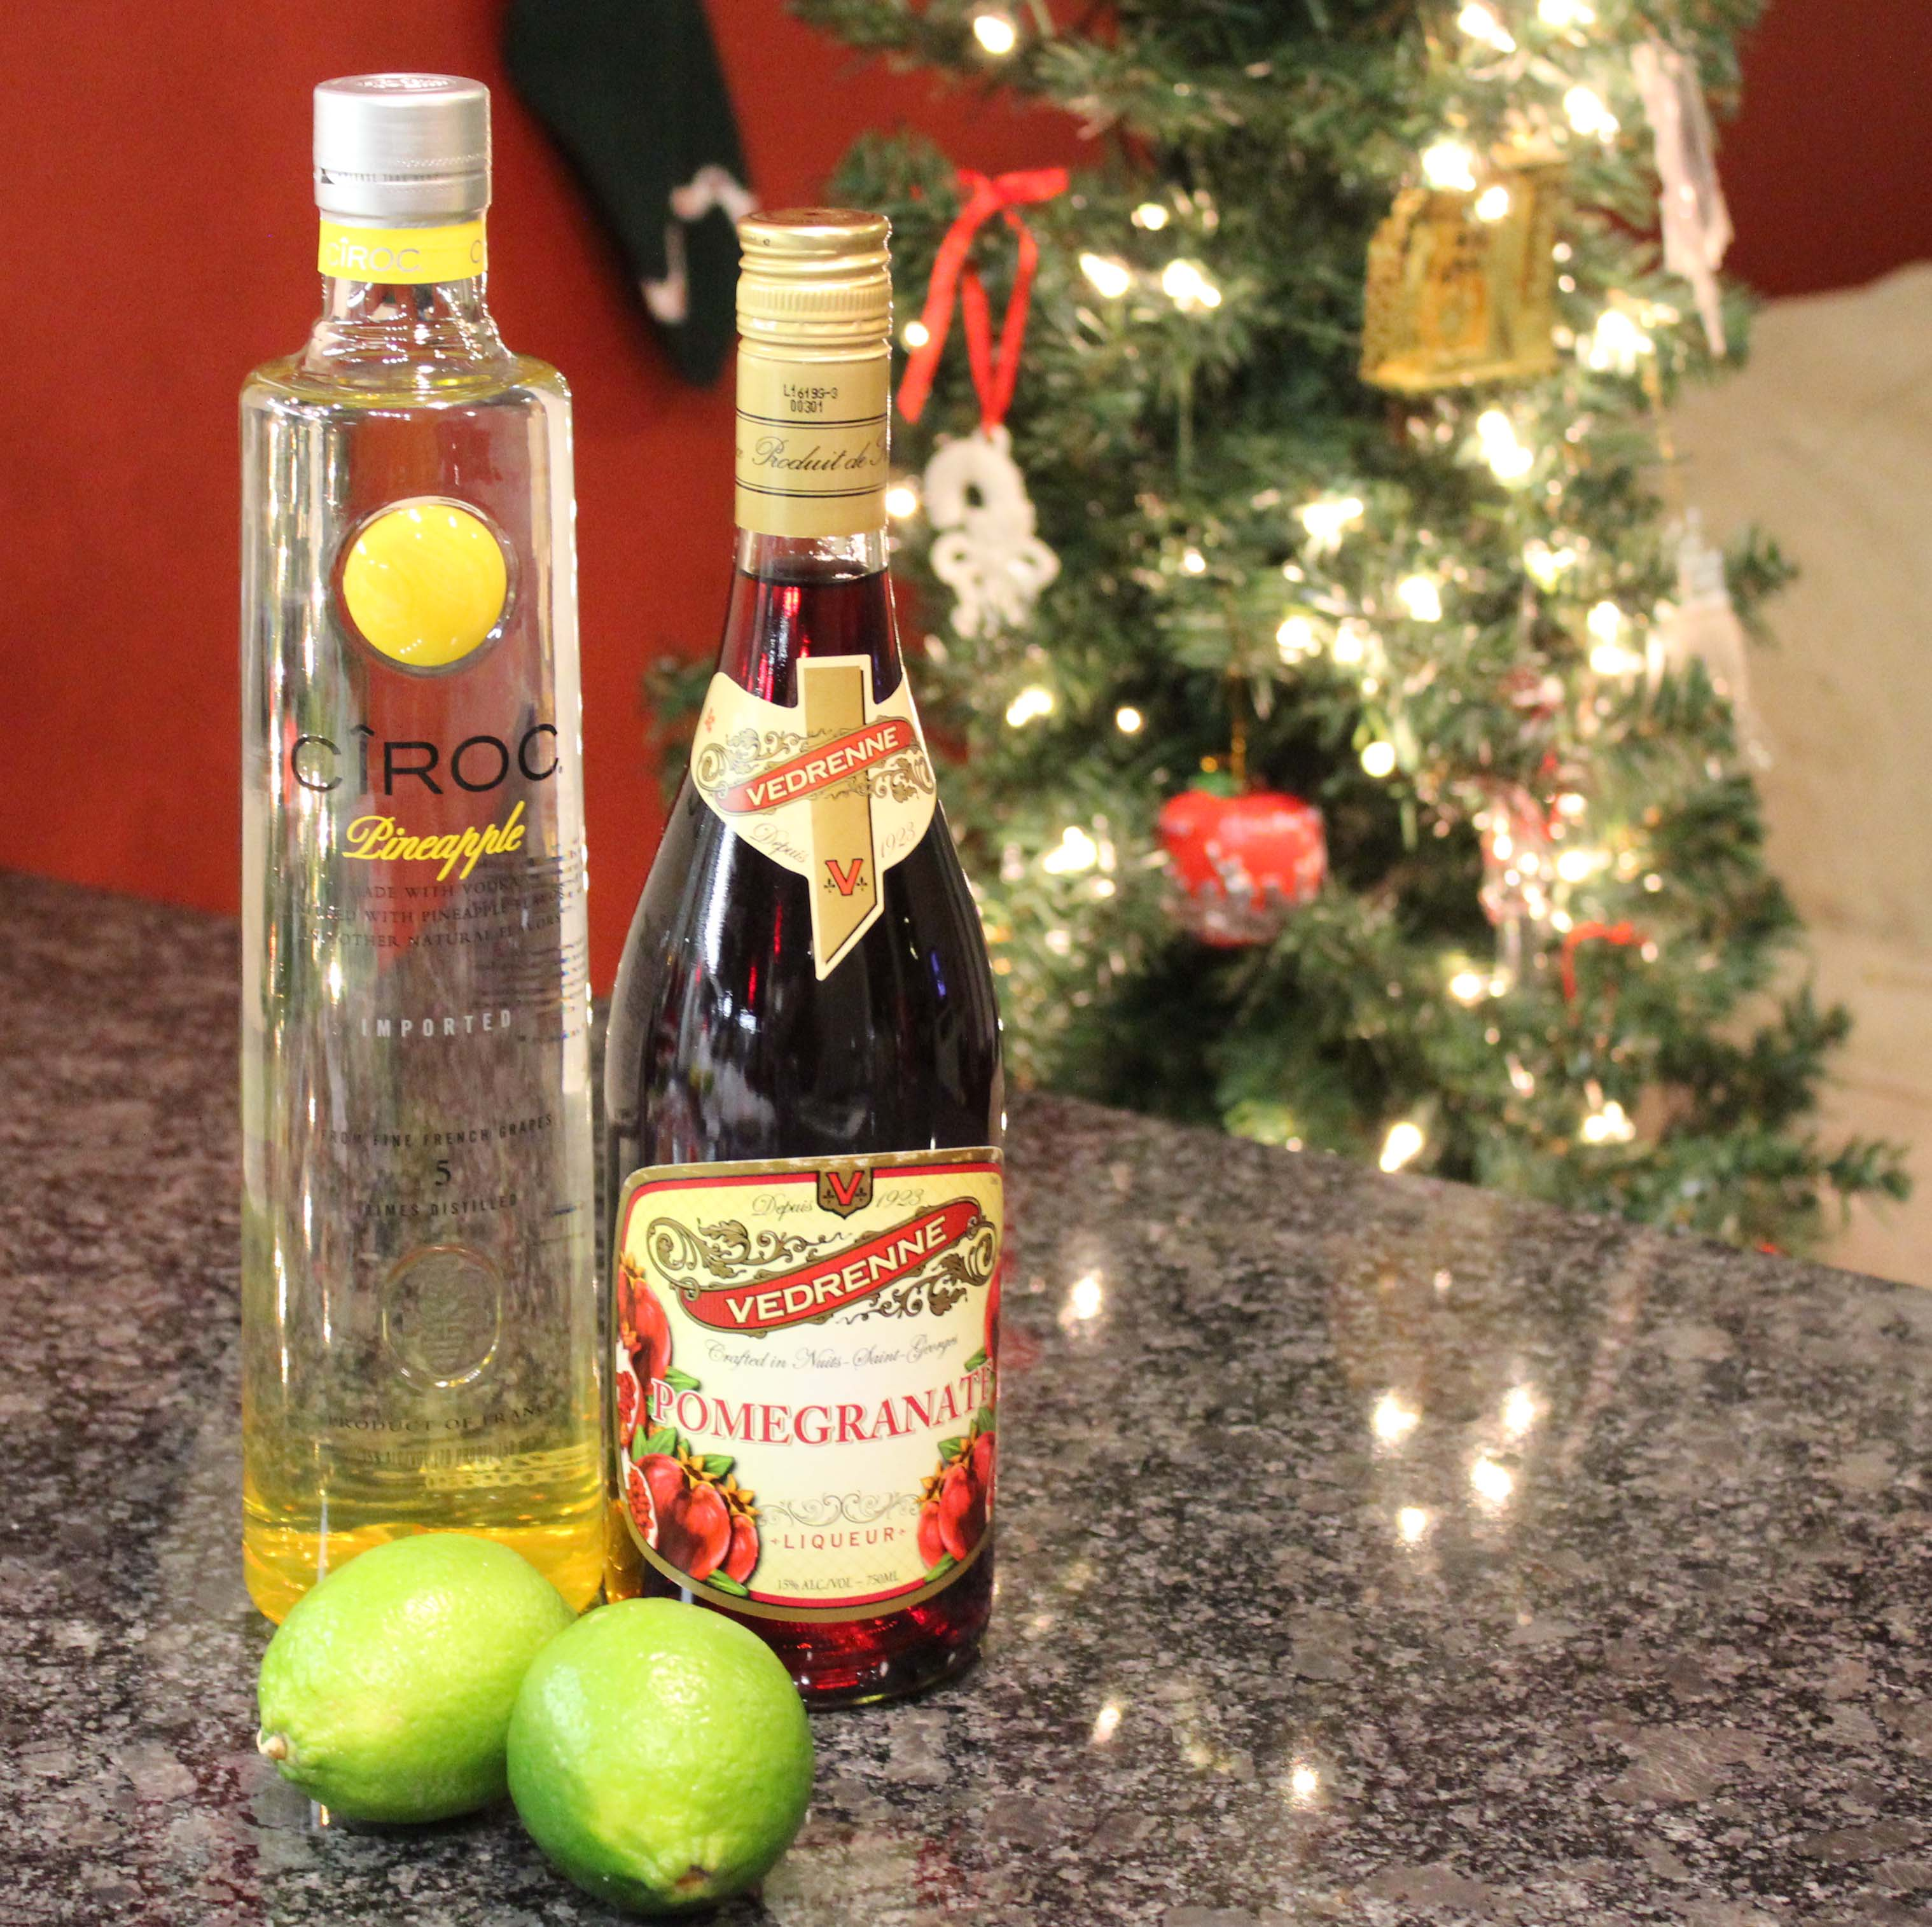 Ciroc Pineapple and Vedrenne Pomegranate Liqueur